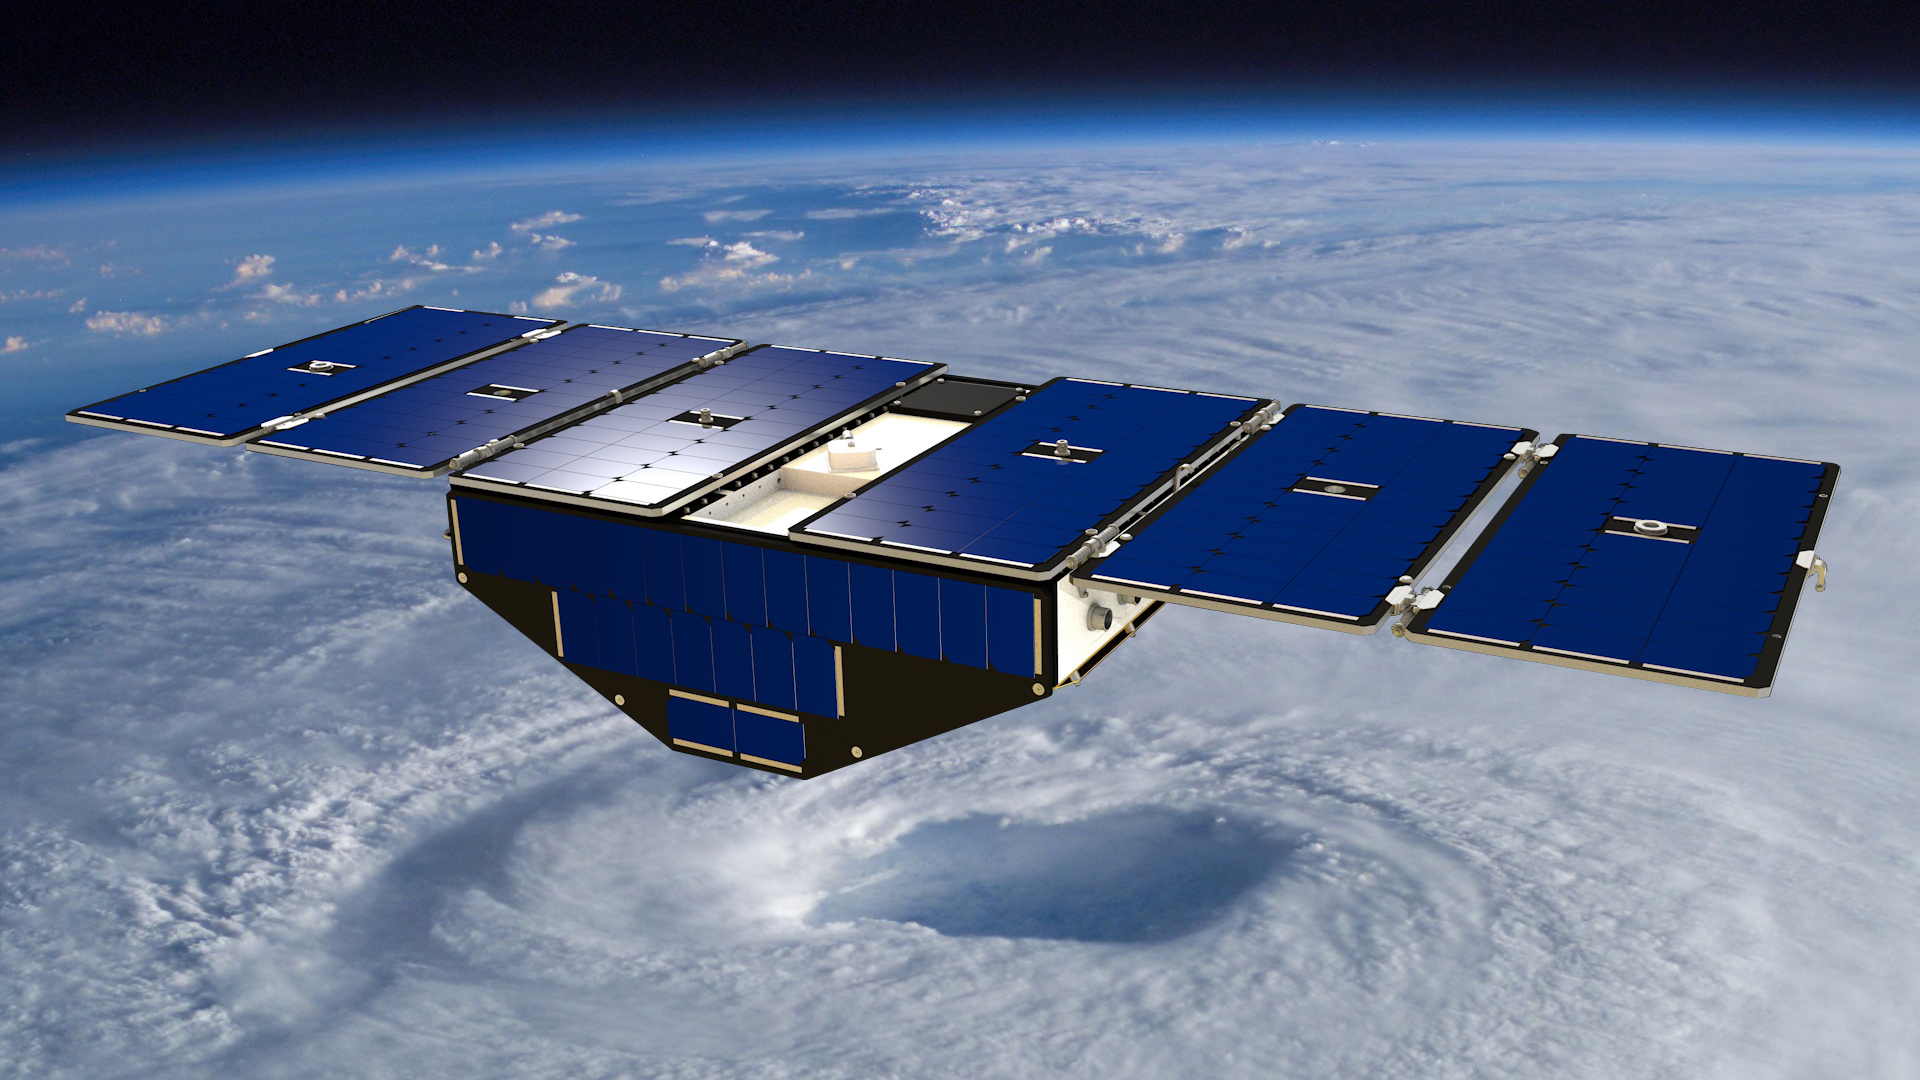 NASA's CYGNSS Hurricane-Tracking Satellites in Pictures